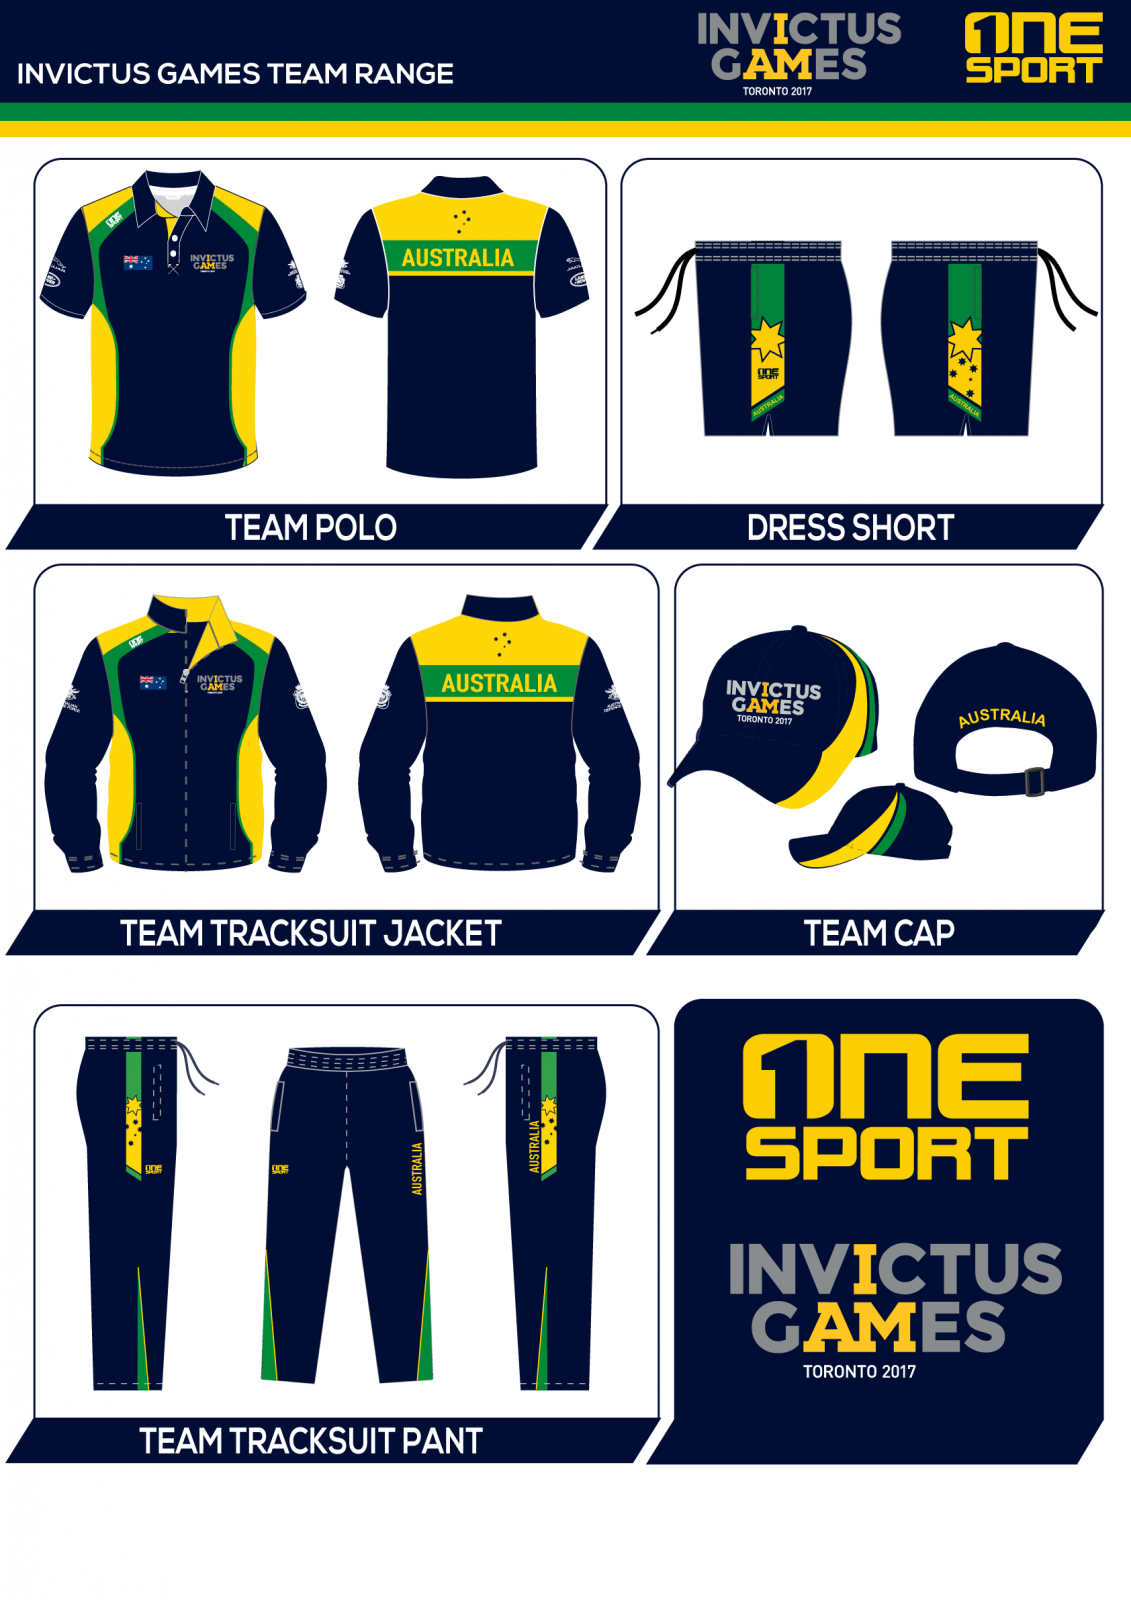 17273 Invictus Games TEAM Story 1 - Custom Puffer Jacket and Vest